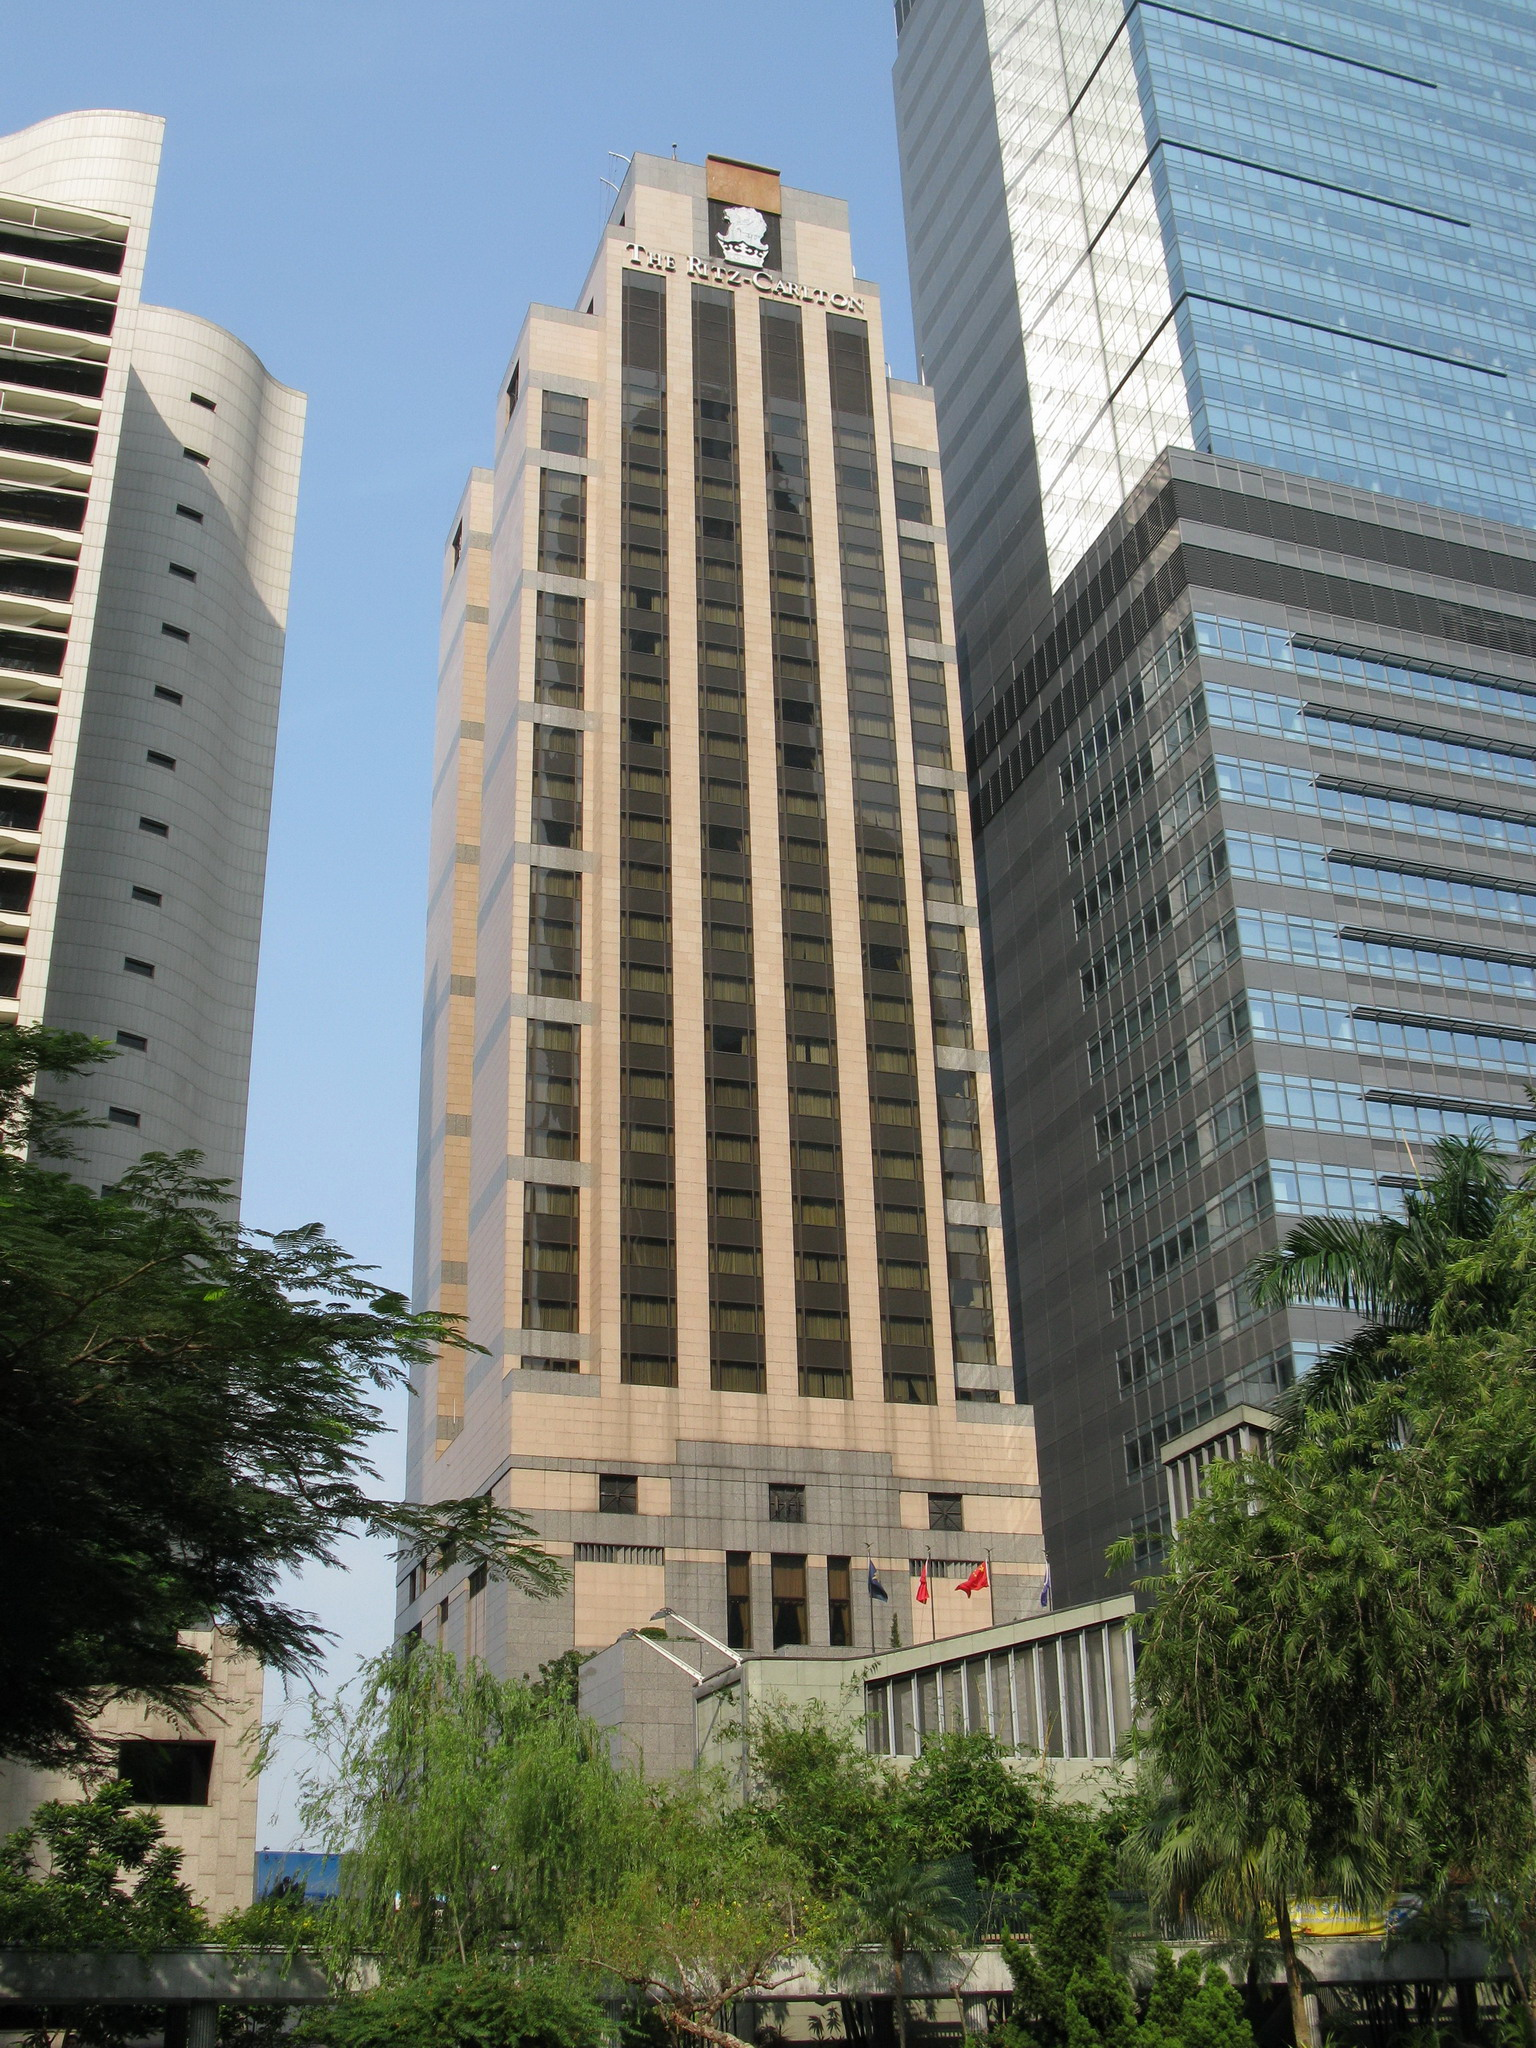 The 31-storey Ritz-Carlton was completed in 1993.